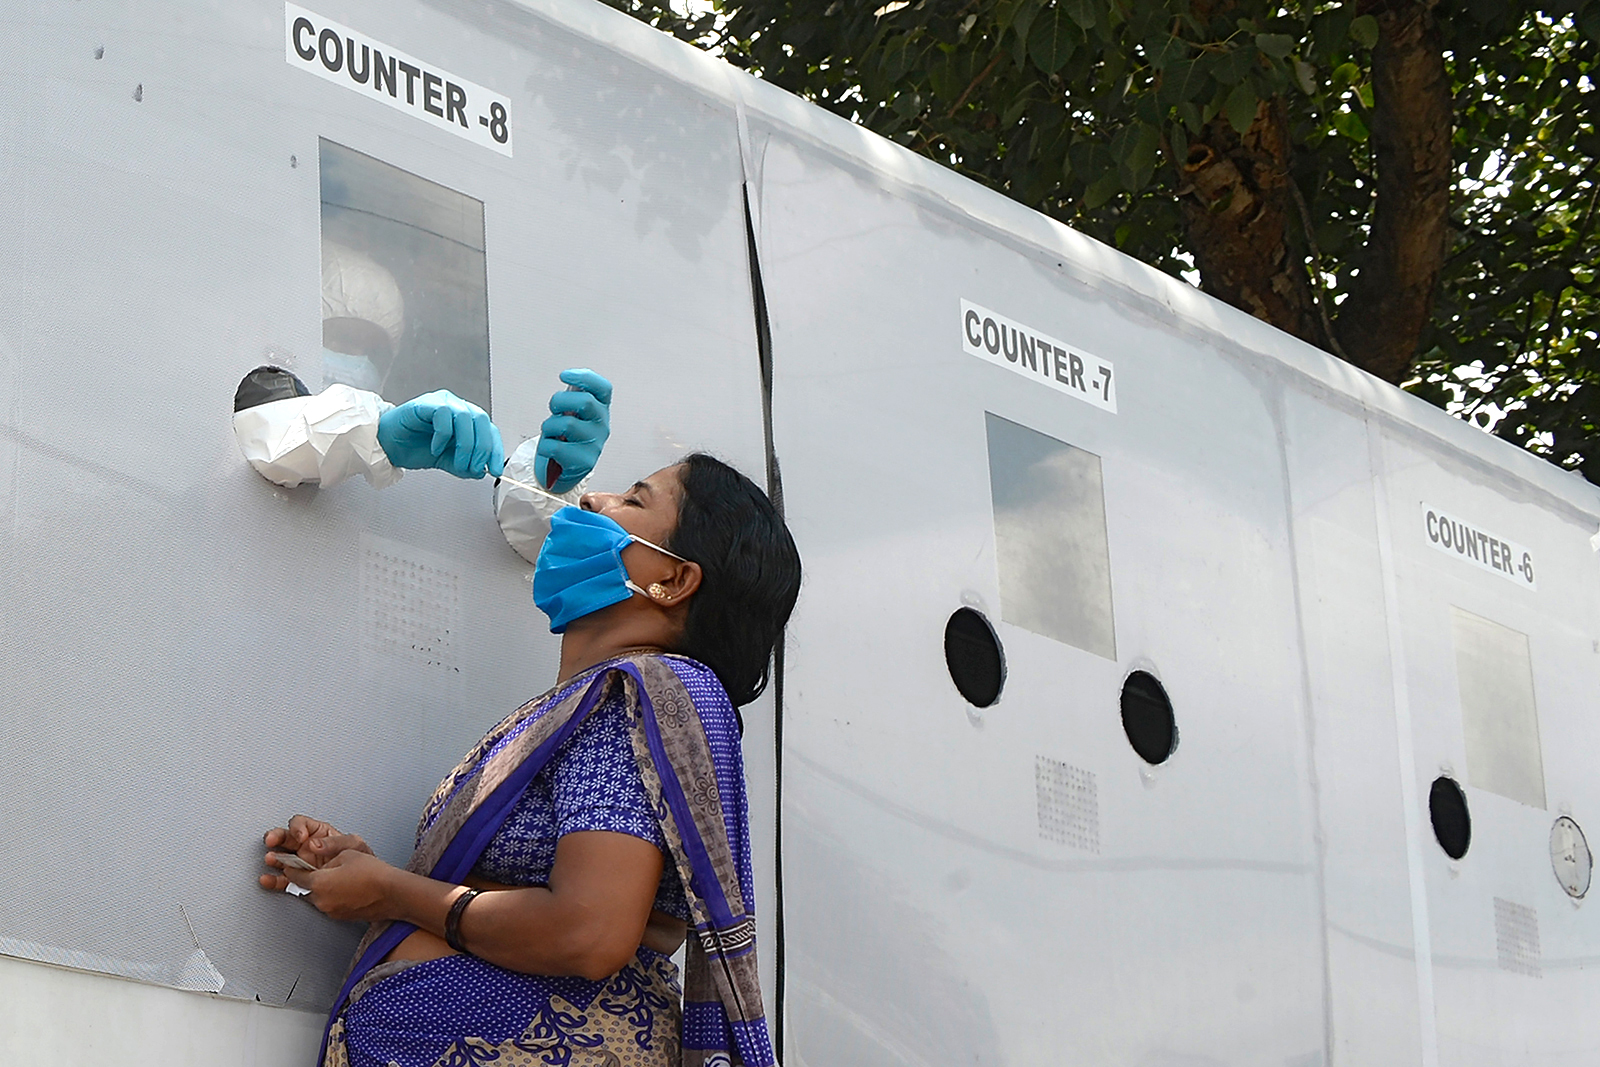 A health worker wearing personal protective equipment collects a swab sample of a woman at a free Covid-19 testing site in Hyderabad, India, on August 25.